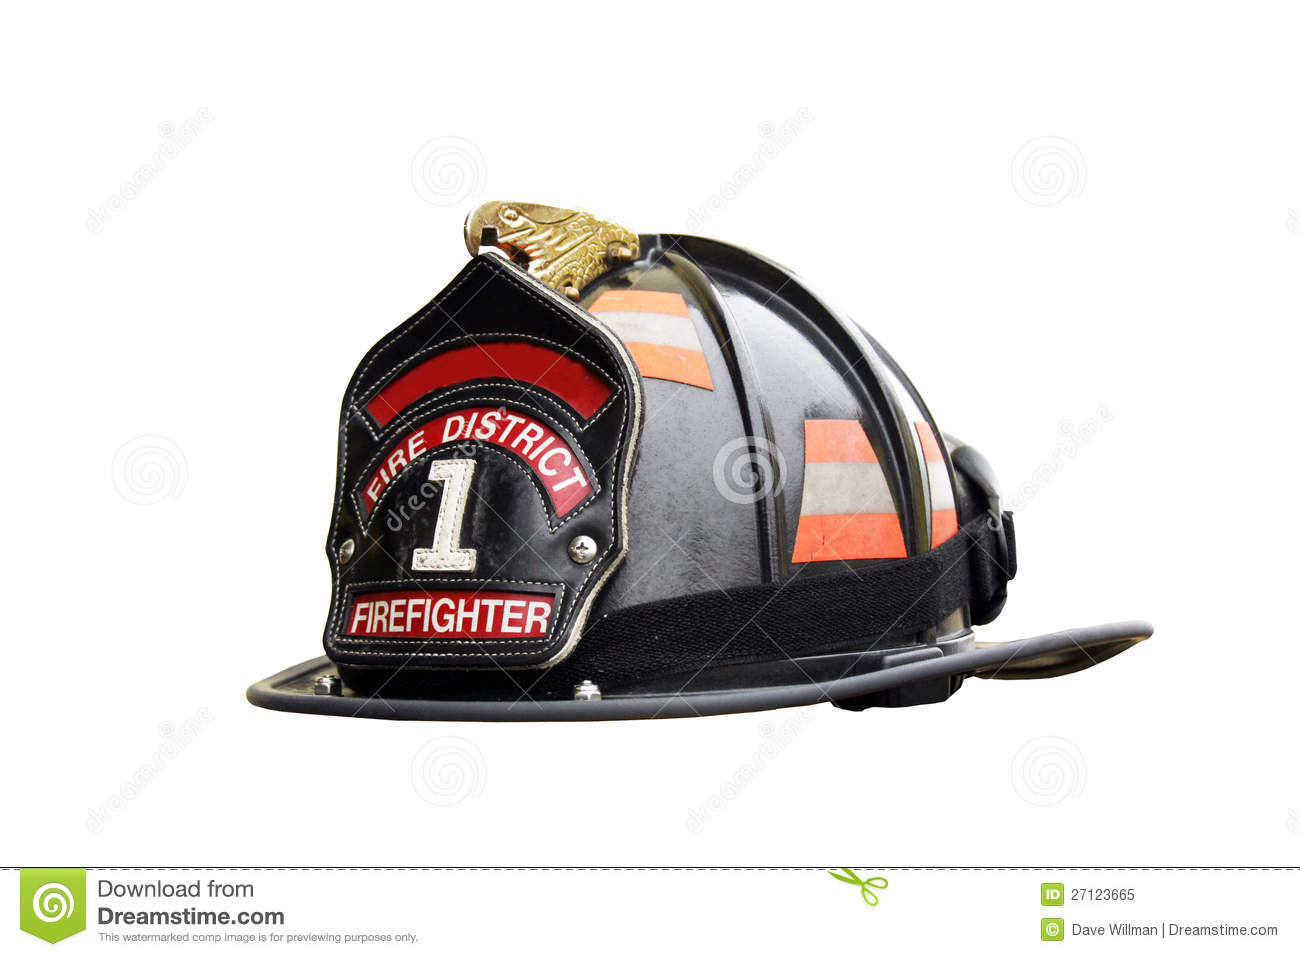 Firefighter hat and leather badge isolated over a white background.